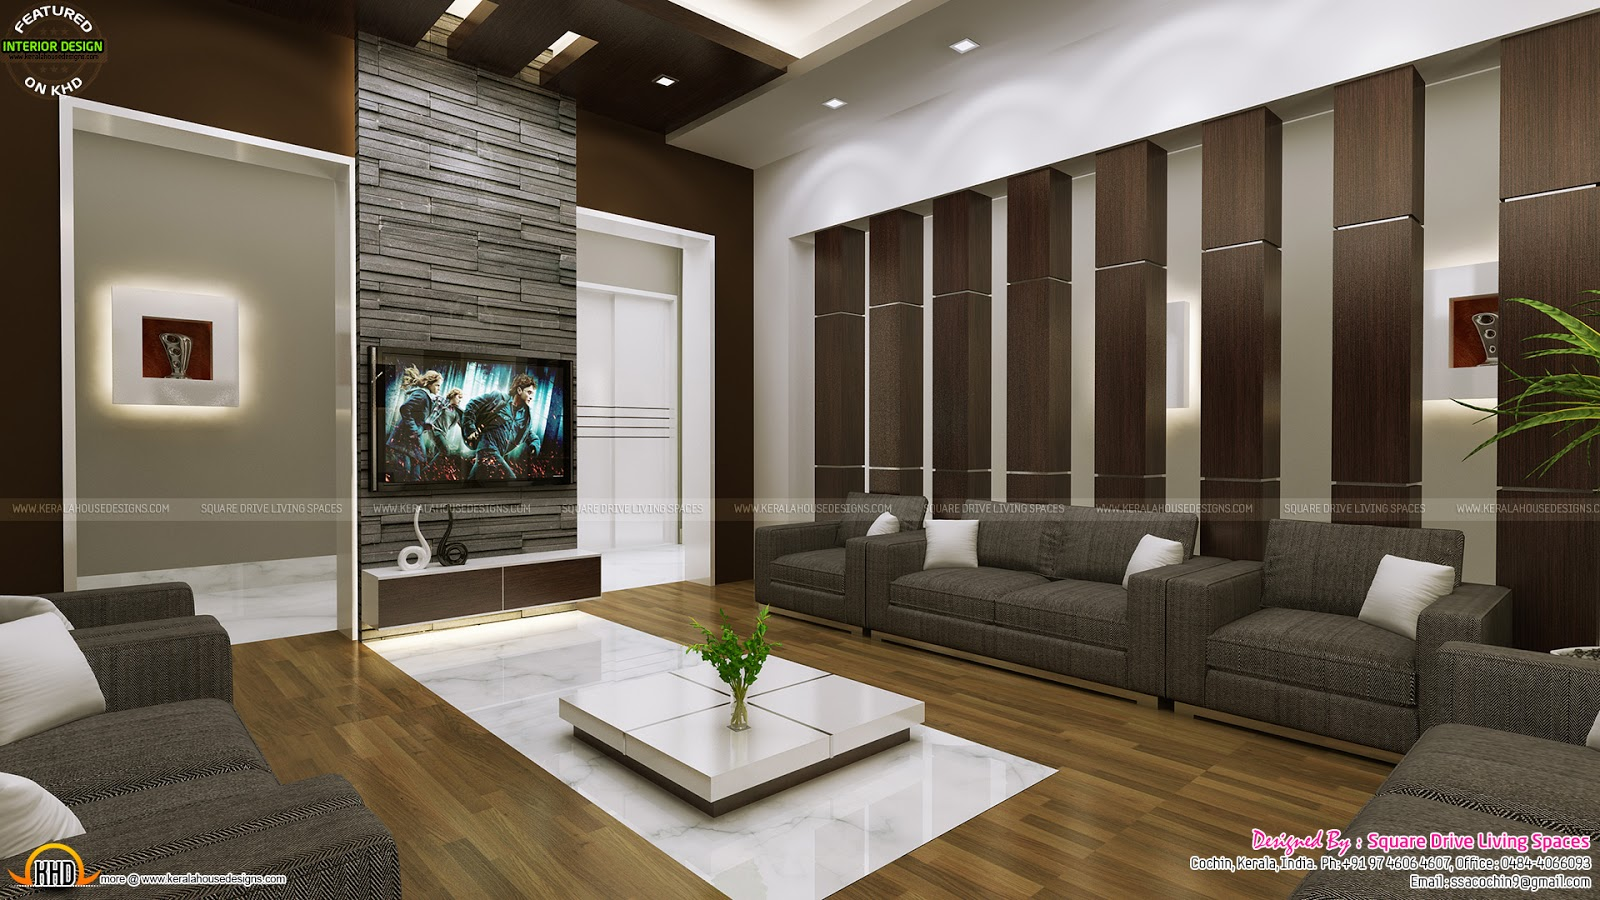 Attractive home interior ideas kerala home design and - Interior living room design ideas ...